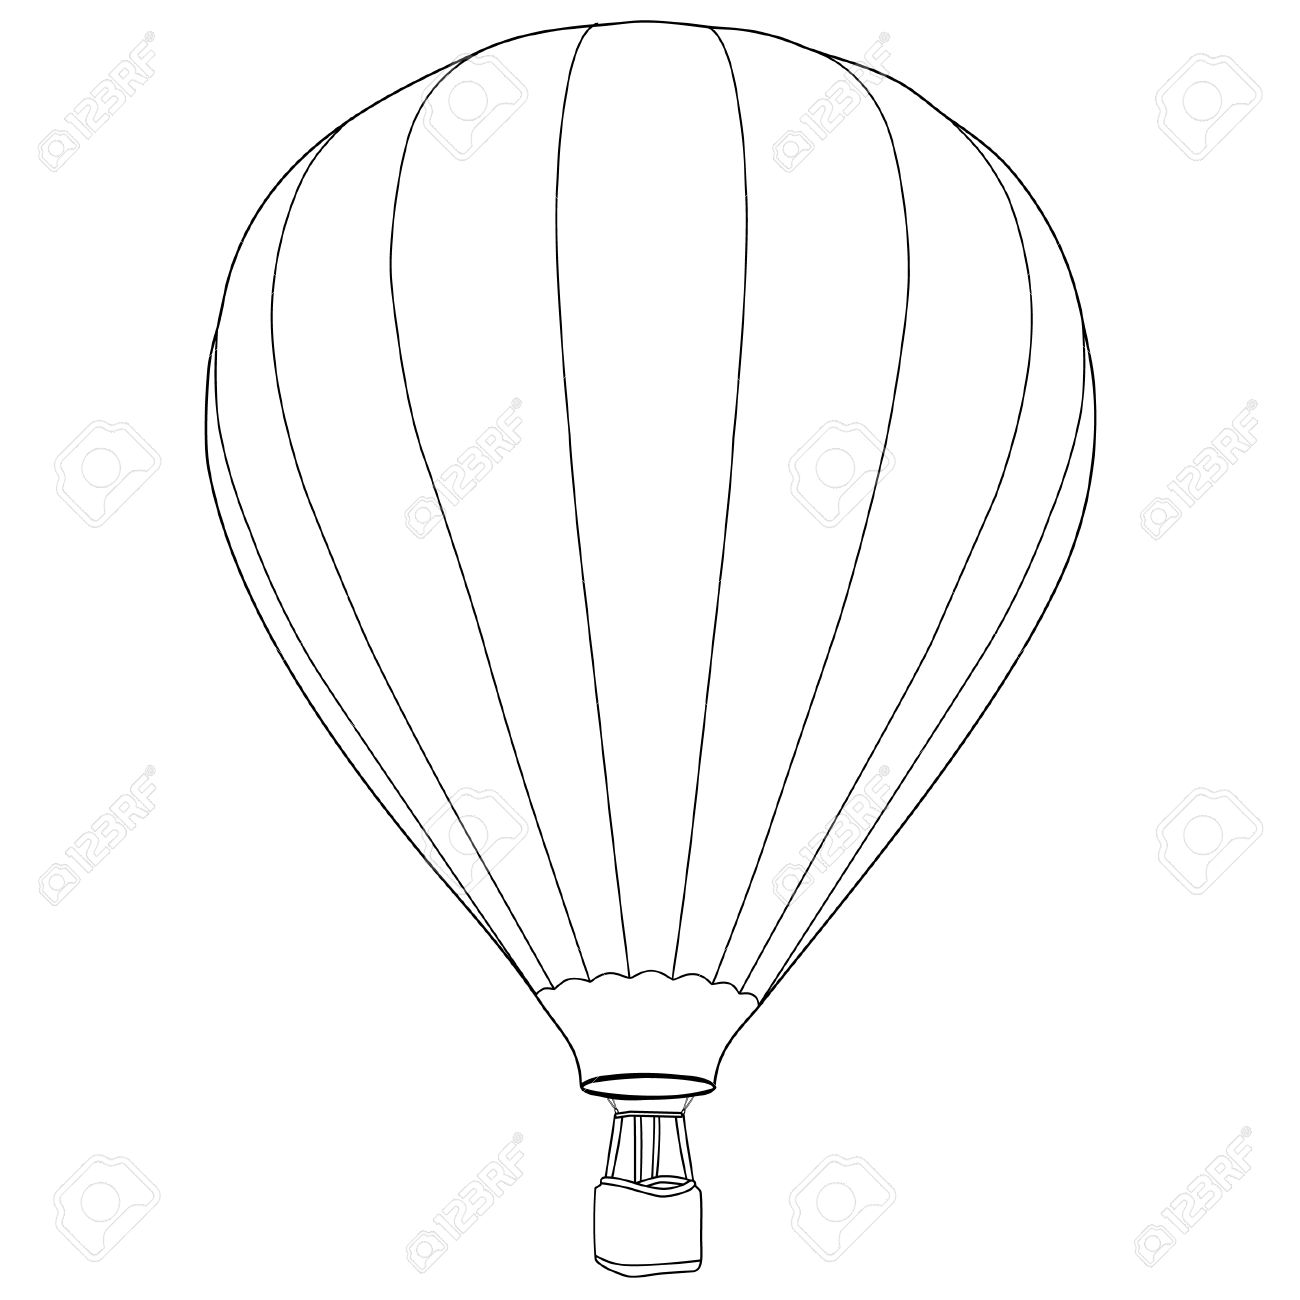 1300x1300 Unlimited Hot Air Balloon Outline Vintage With Basket Vector Icon